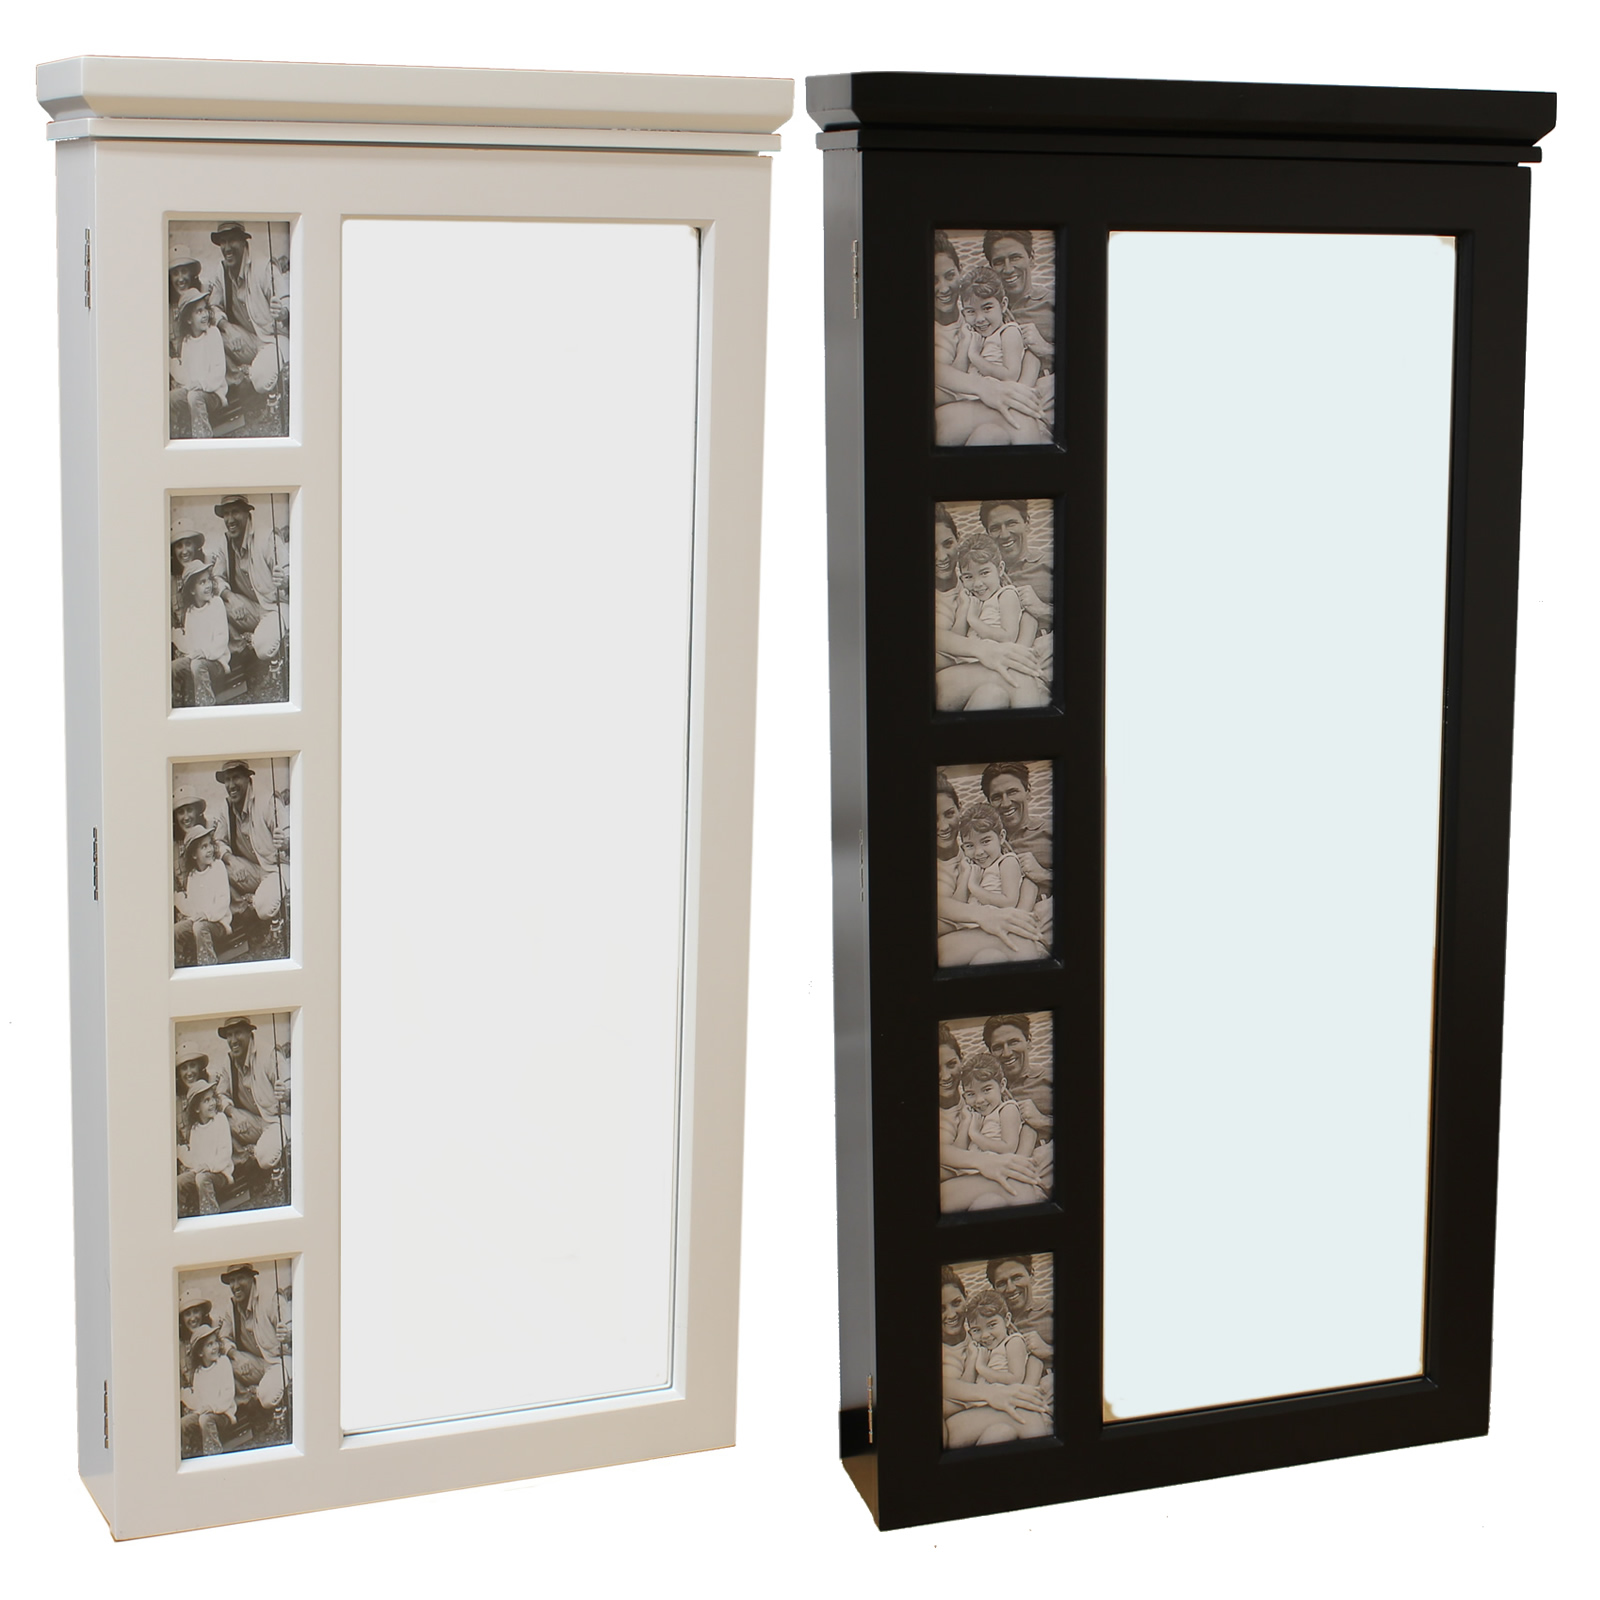 Fancy Wooden Standing Mirror Jewelry Armoire Without Stand In Black And White Option Colors For Home Furniture Ideas